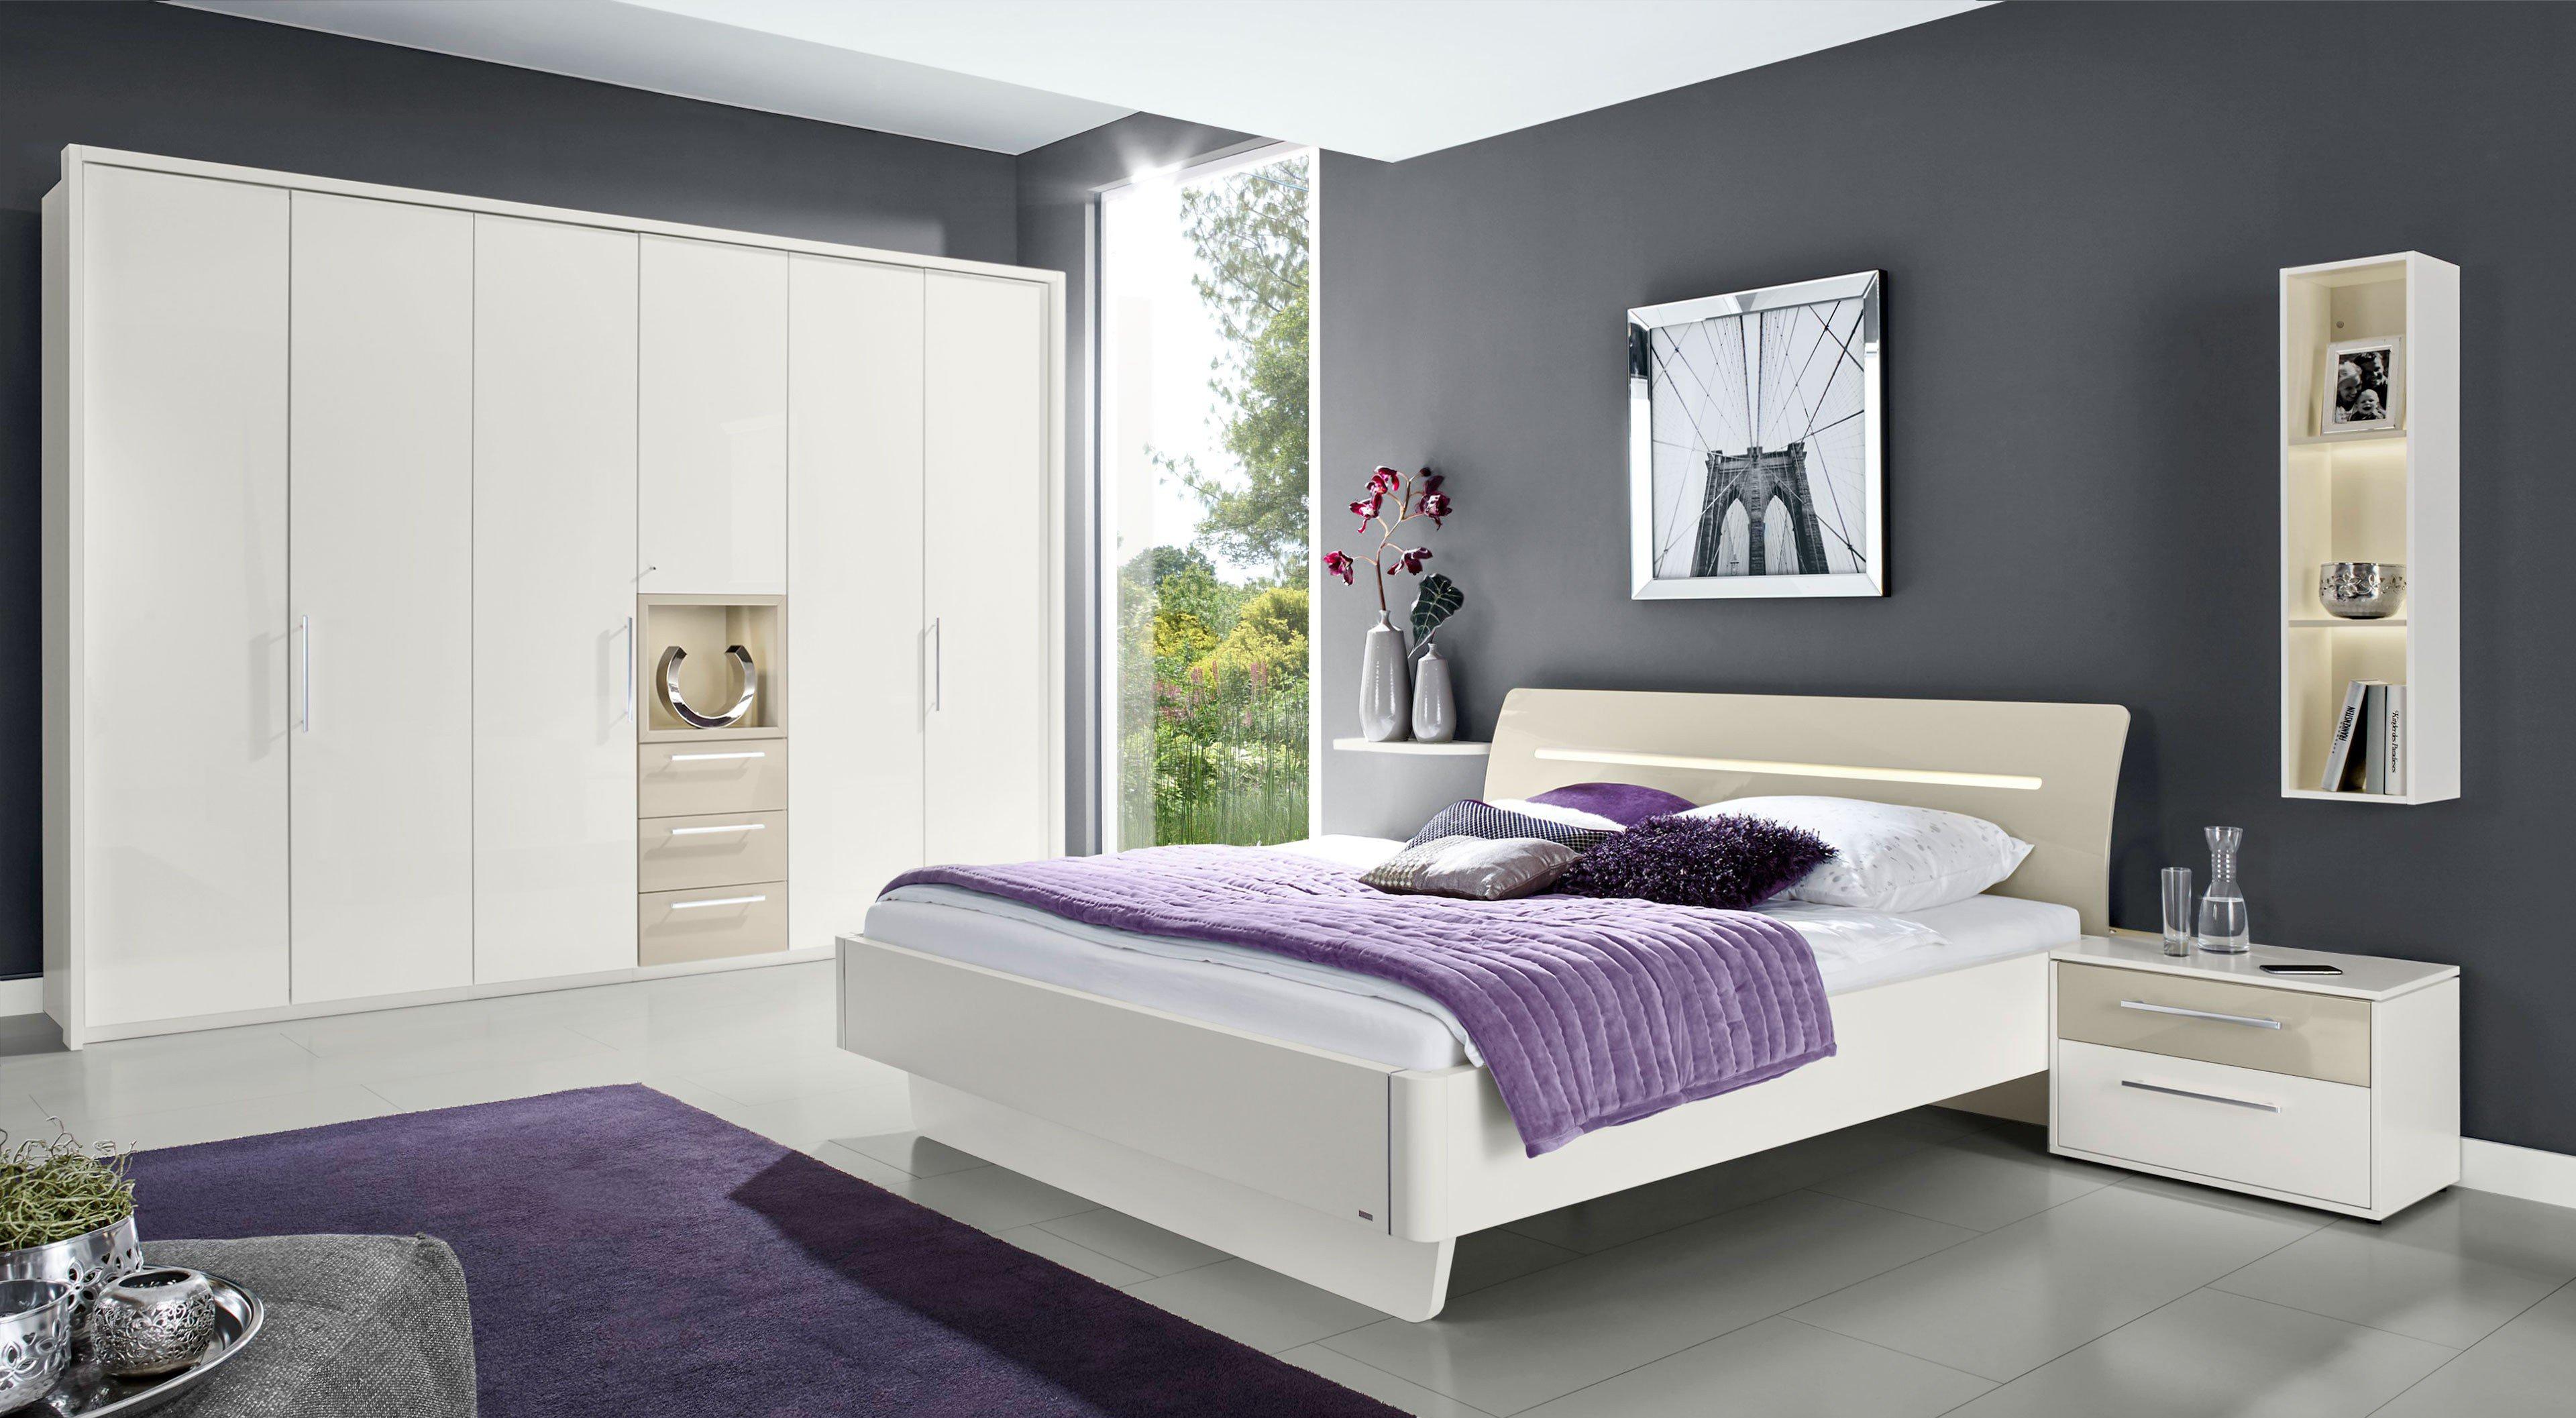 loddenkemper meo schlafzimmer hochglanz m bel letz ihr online shop. Black Bedroom Furniture Sets. Home Design Ideas